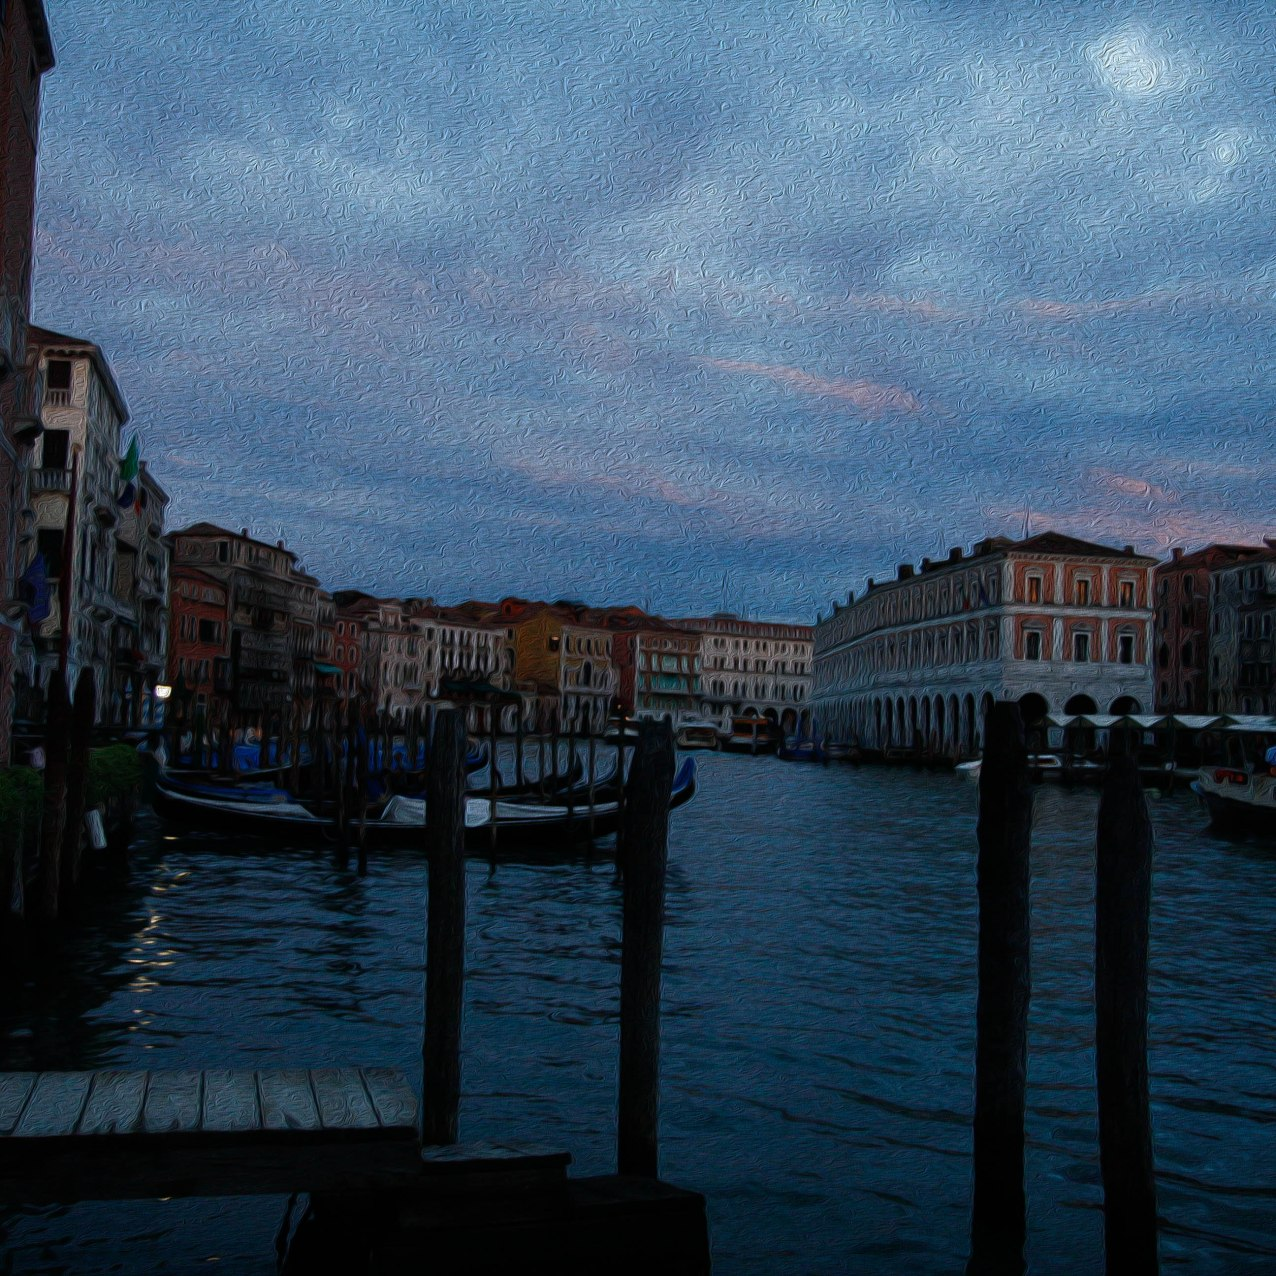 Venice painted